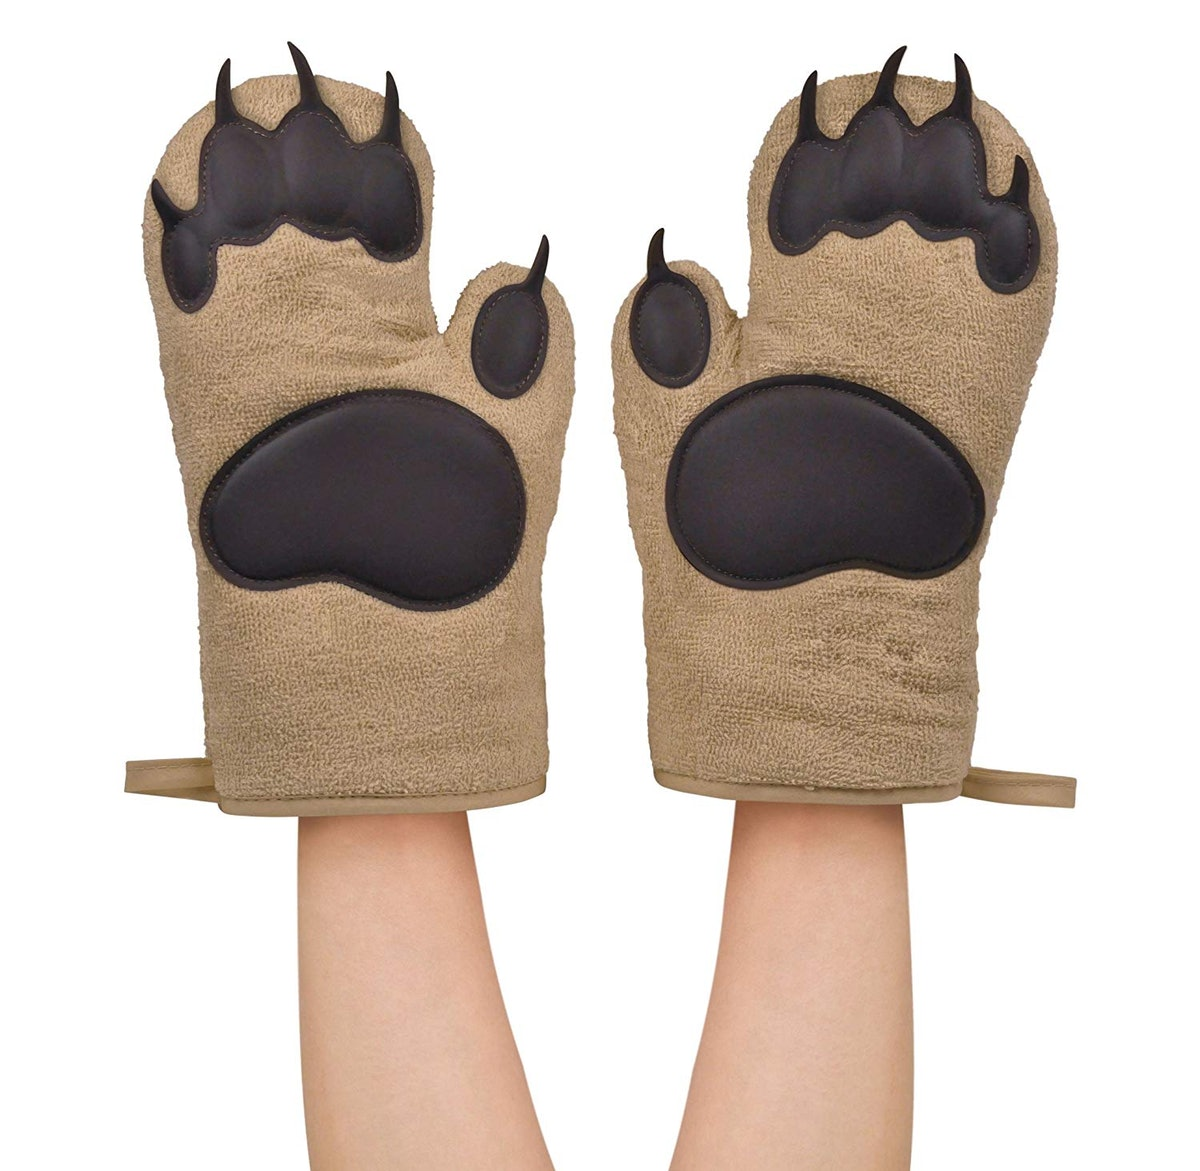 Fred & Friends Bear Oven Mitts